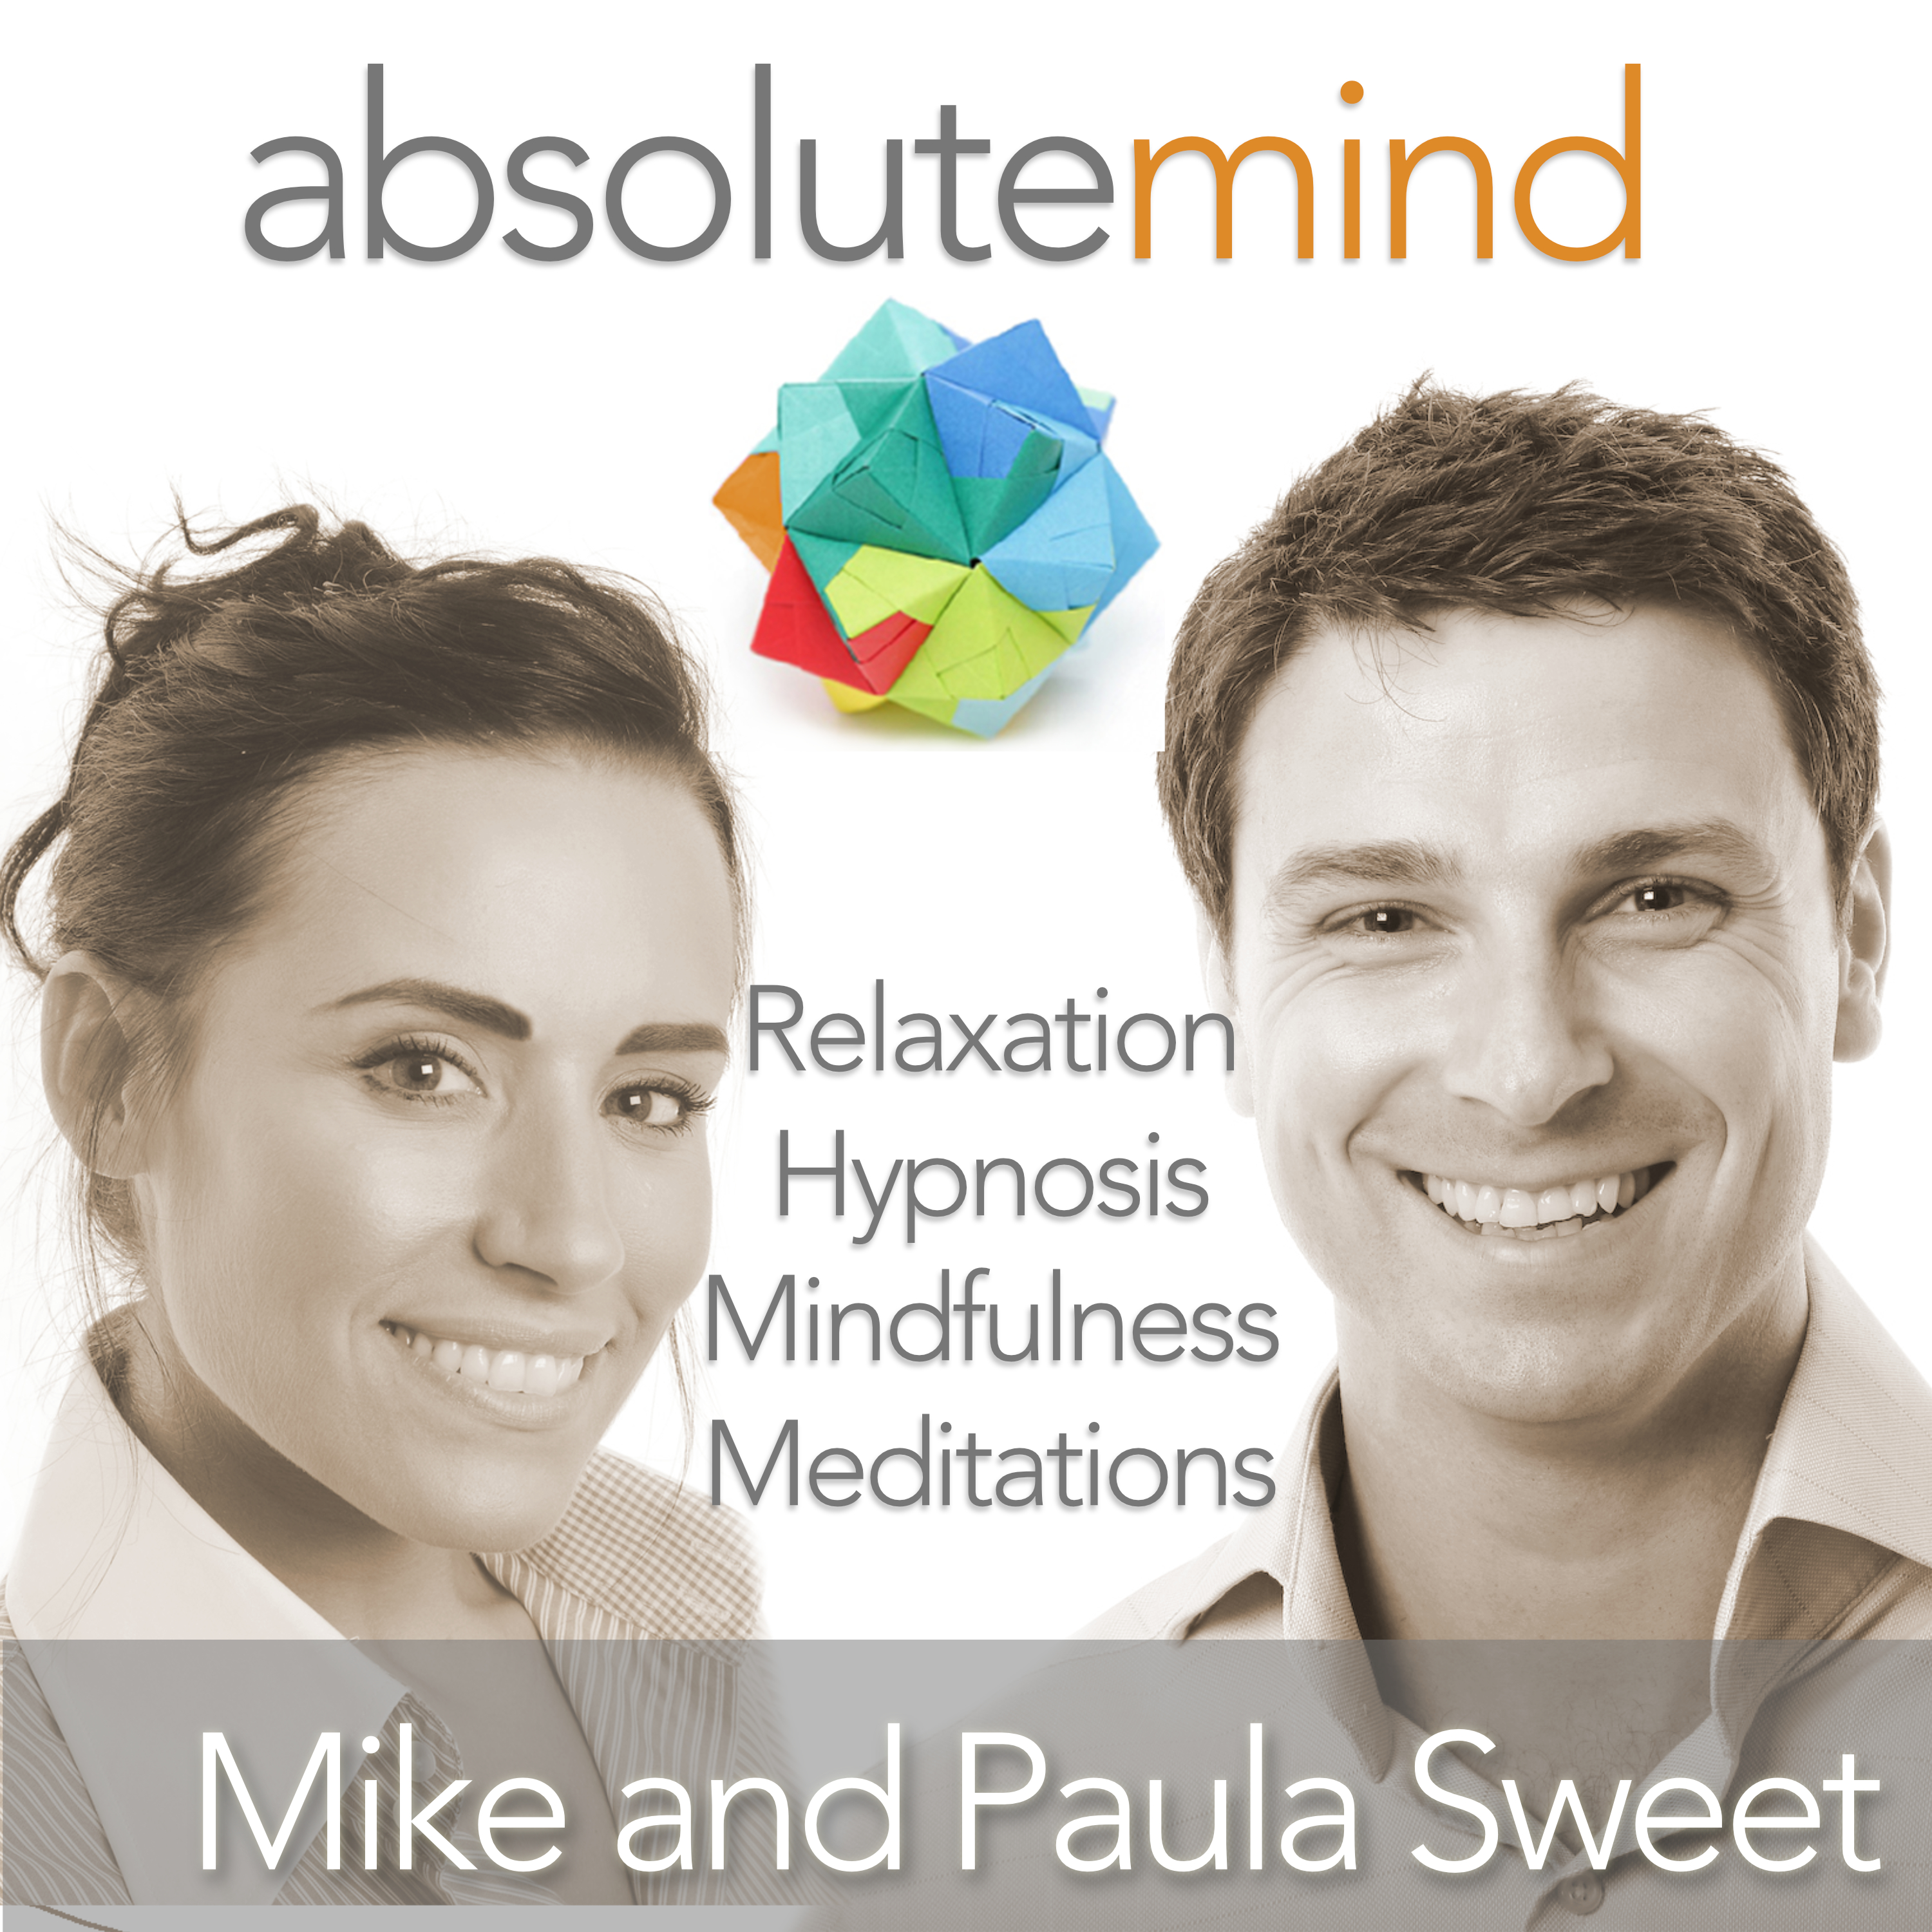 Hypnosis   Hypnotherapy   Life Coaching   Meditations and Self Help by Mike and Paula Sweet